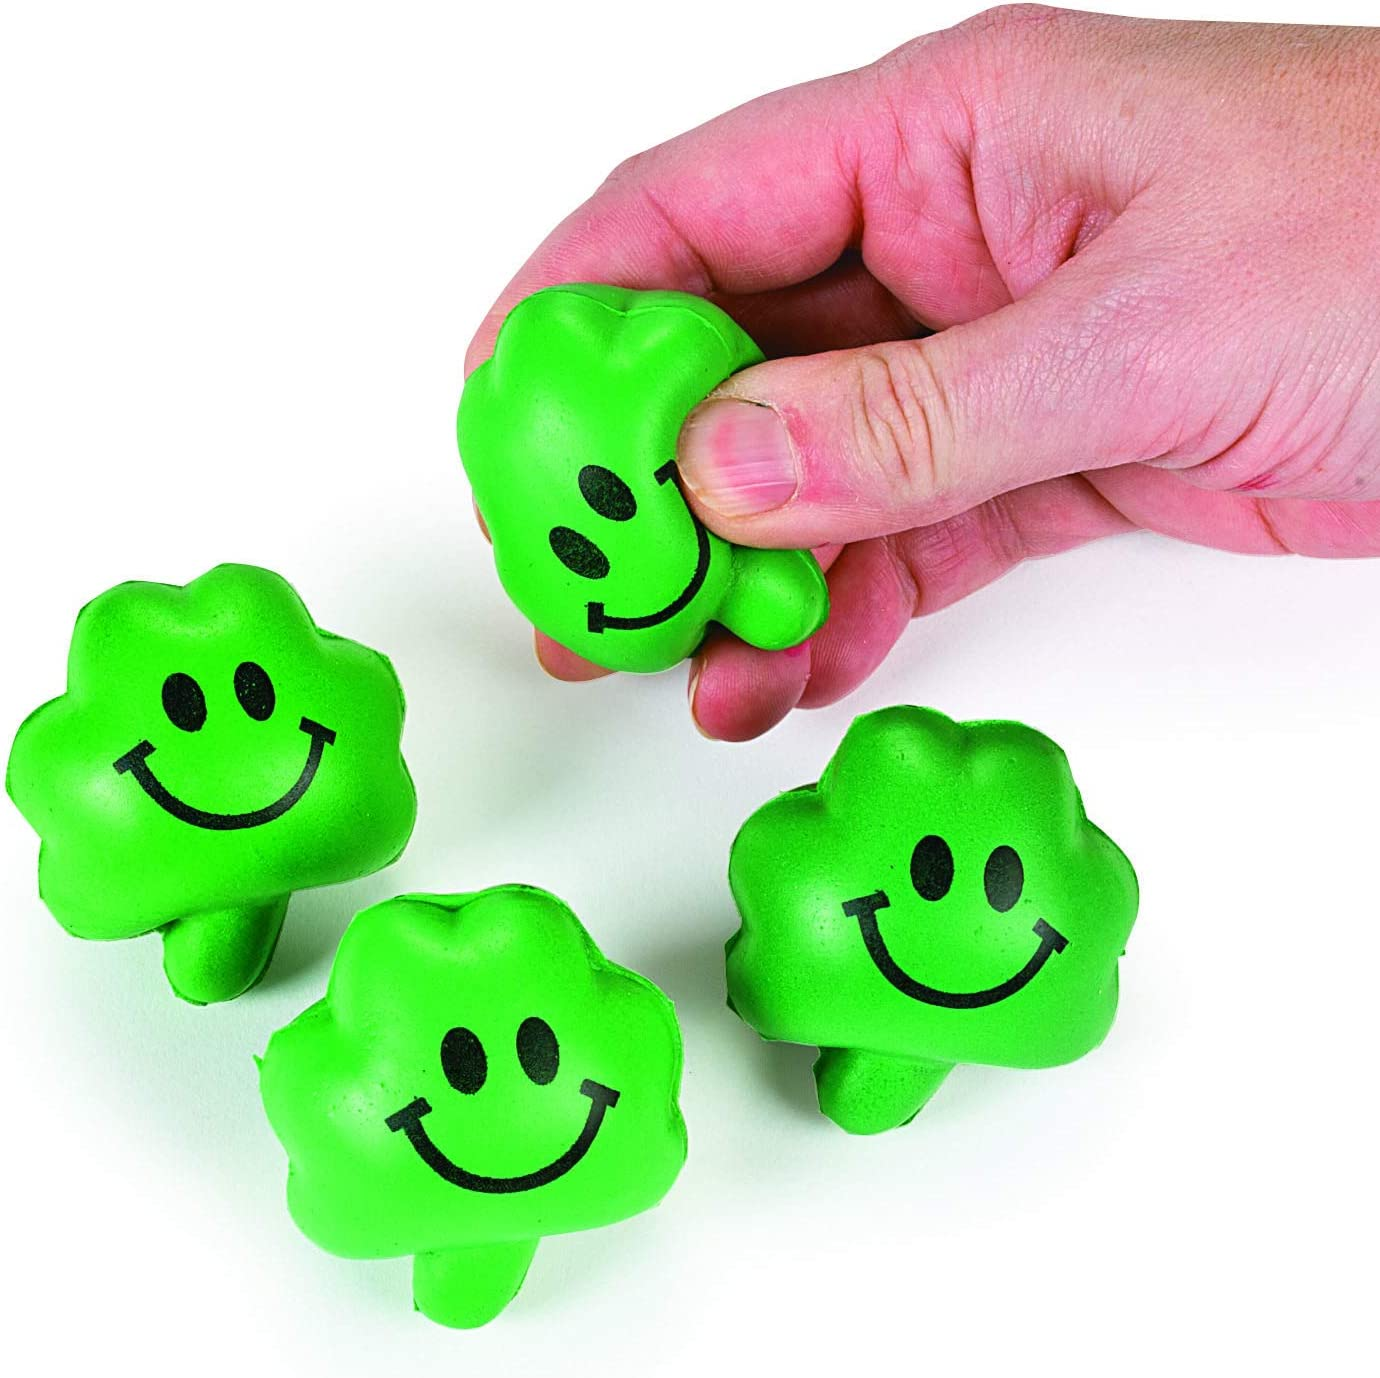 Stress Tension Anxiety Relief St Patricks Day Toys and Party Favors 4Es Novelty Mini Shamrock Party Favors and 24 Mini Shamrock Rubber Duckies 24 Shamrock Relaxable Balls